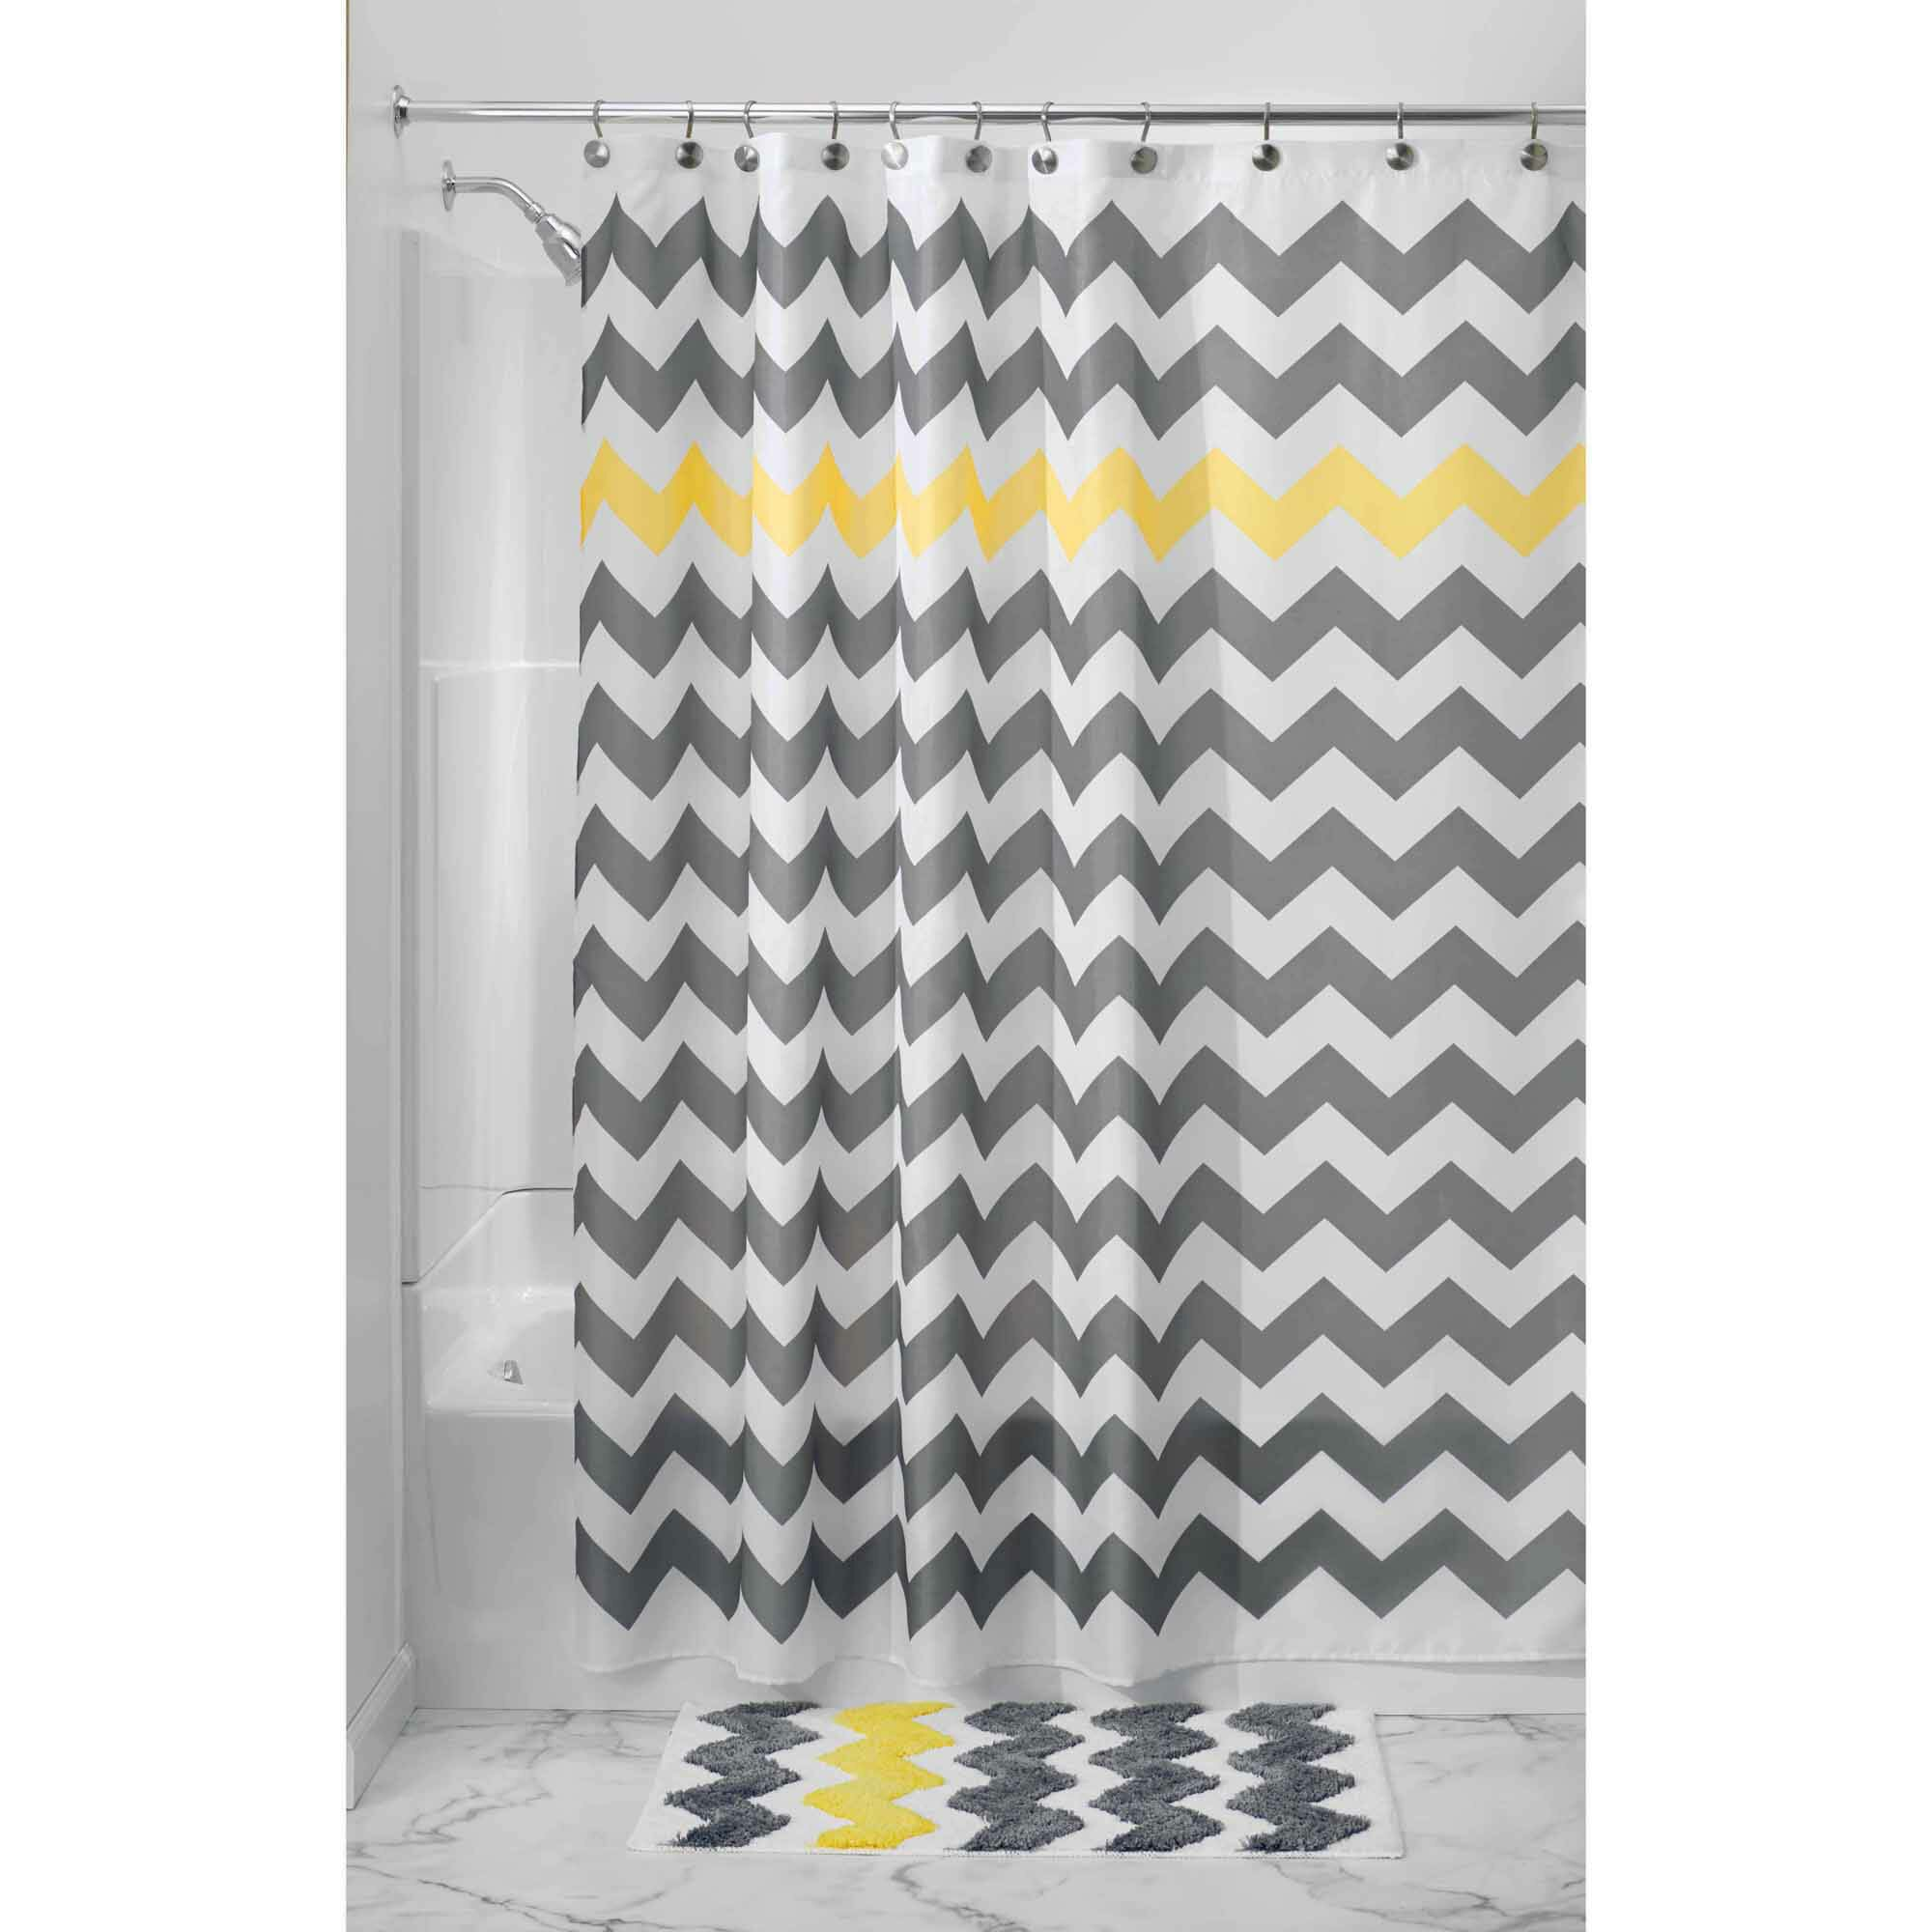 Walmart Shower Curtain for Cute Your Bathroom Decor Ideas: Neutral Shower Curtains | Walmart Shower Curtain | Matching Shower Curtain And Window Curtain